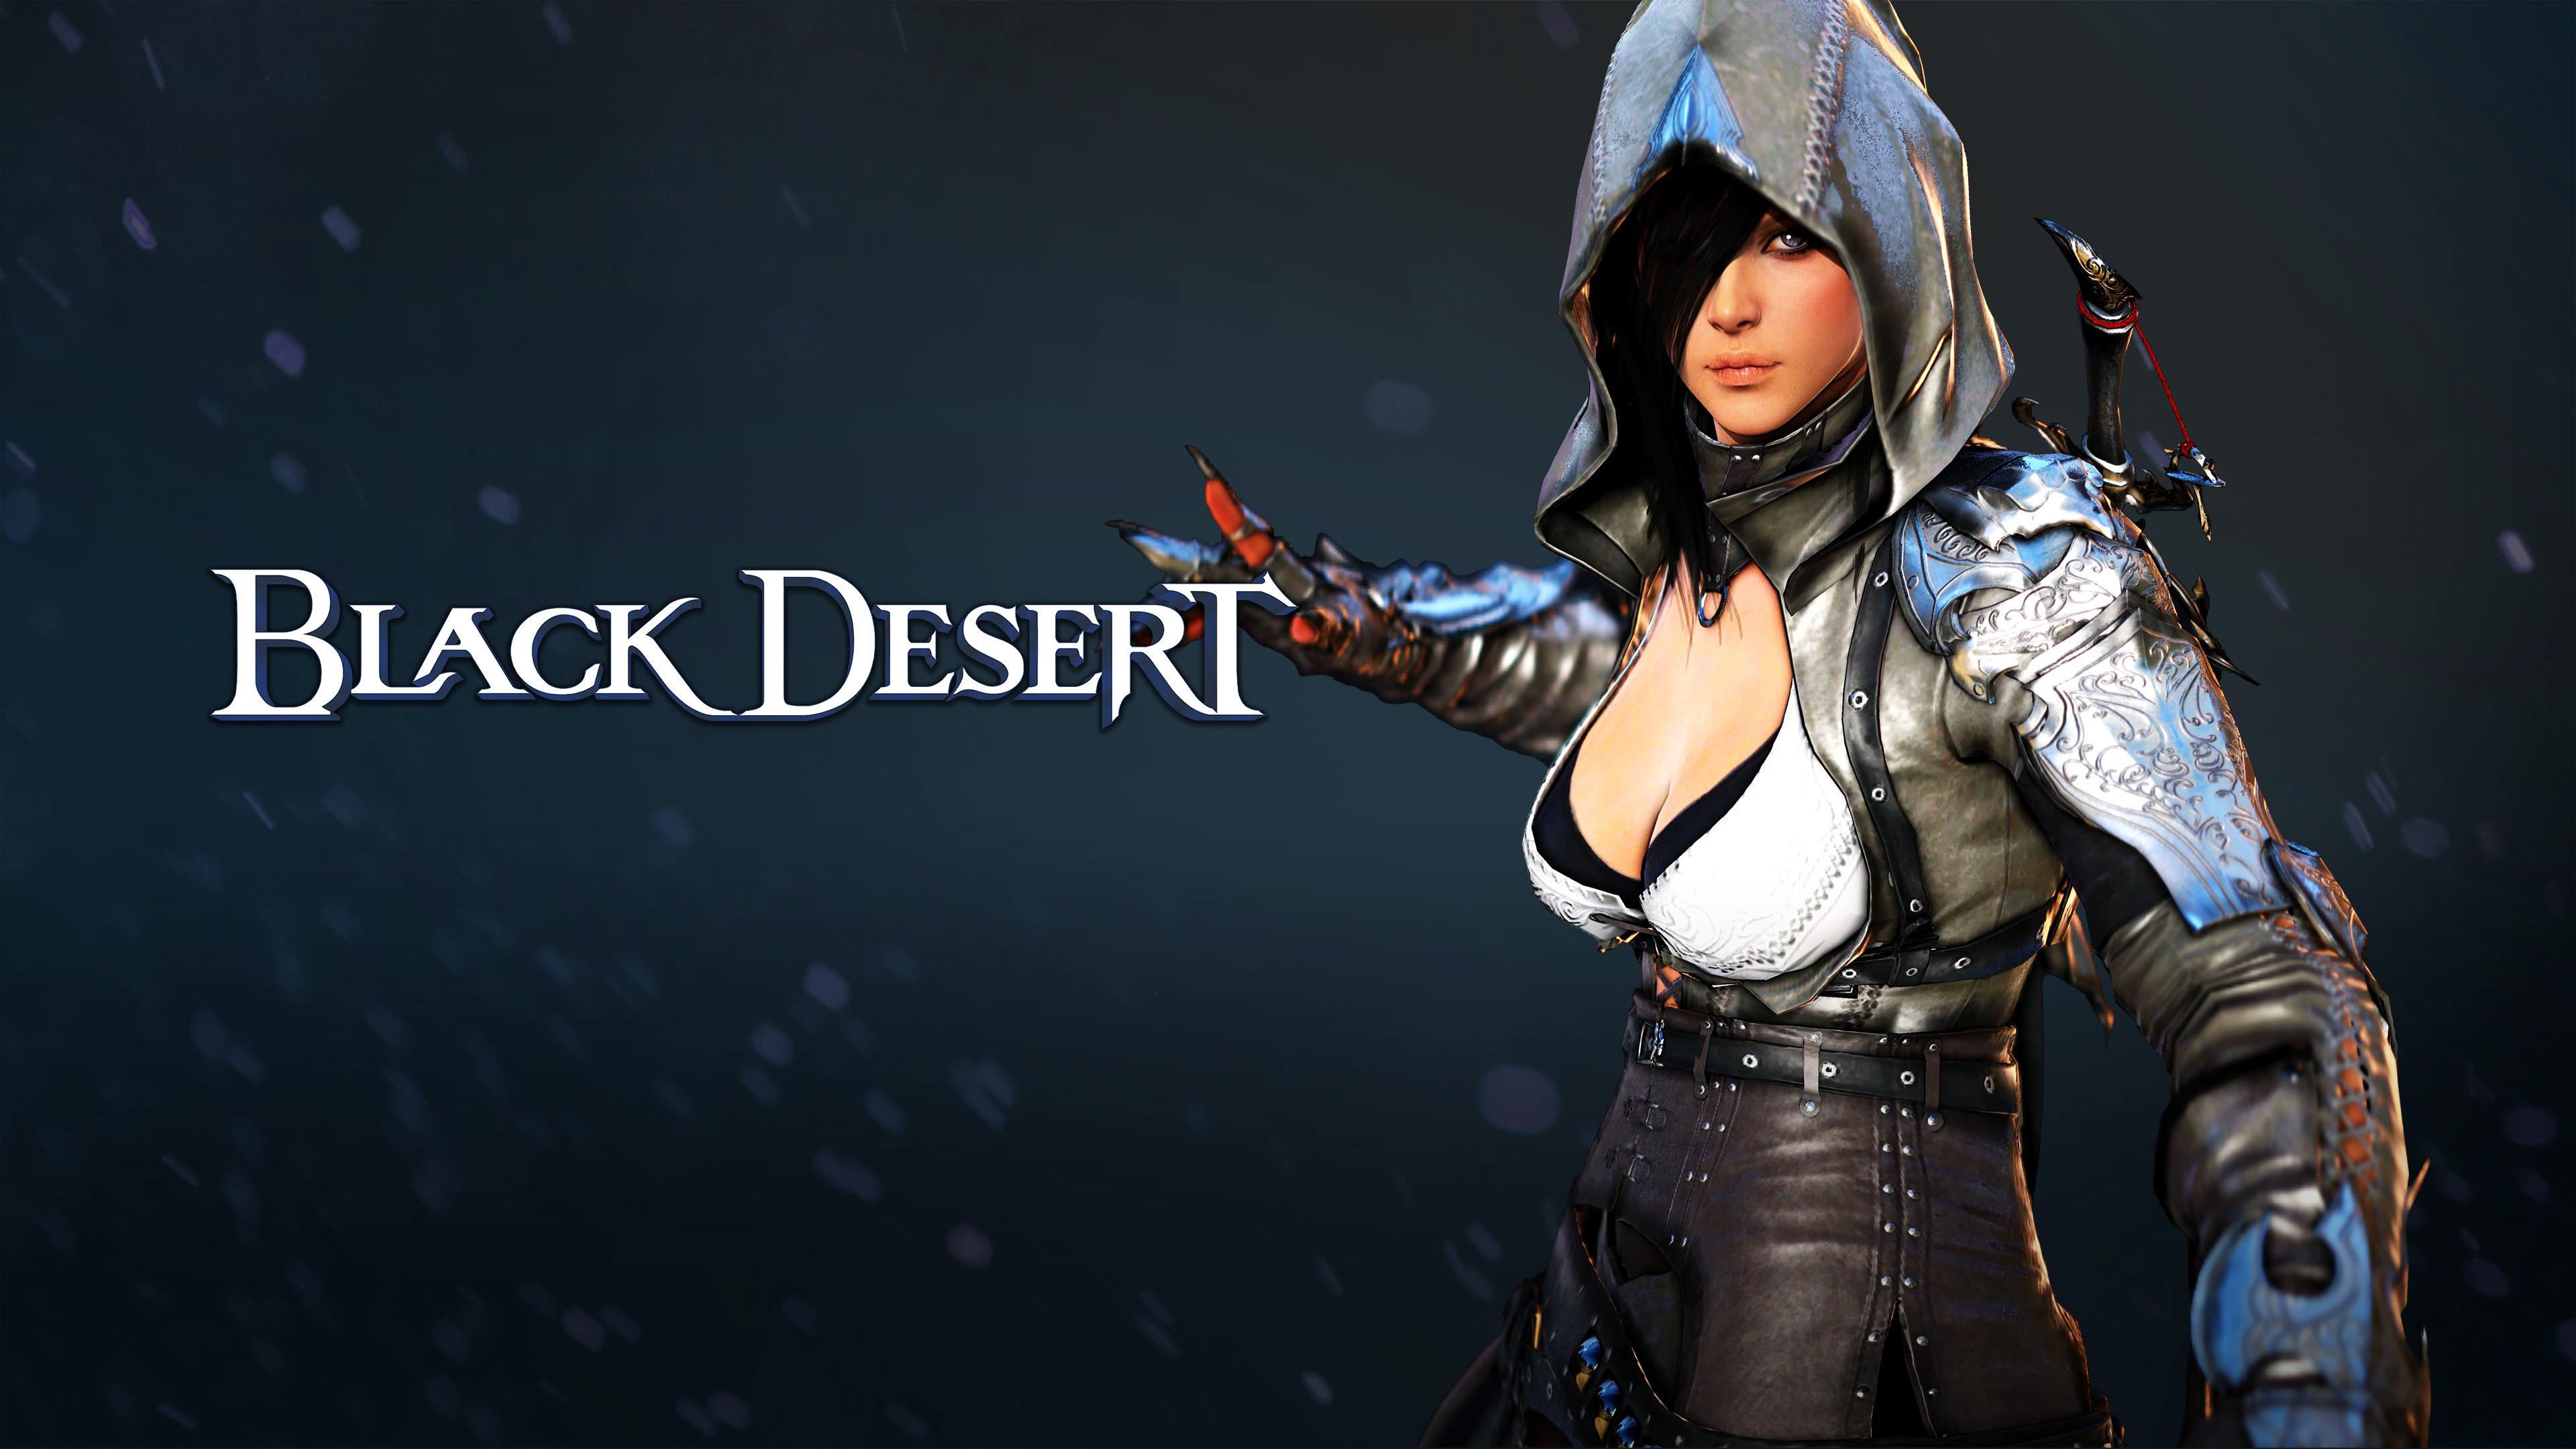 Black Desert, the action MMORPG, is coming to PS4 in ...